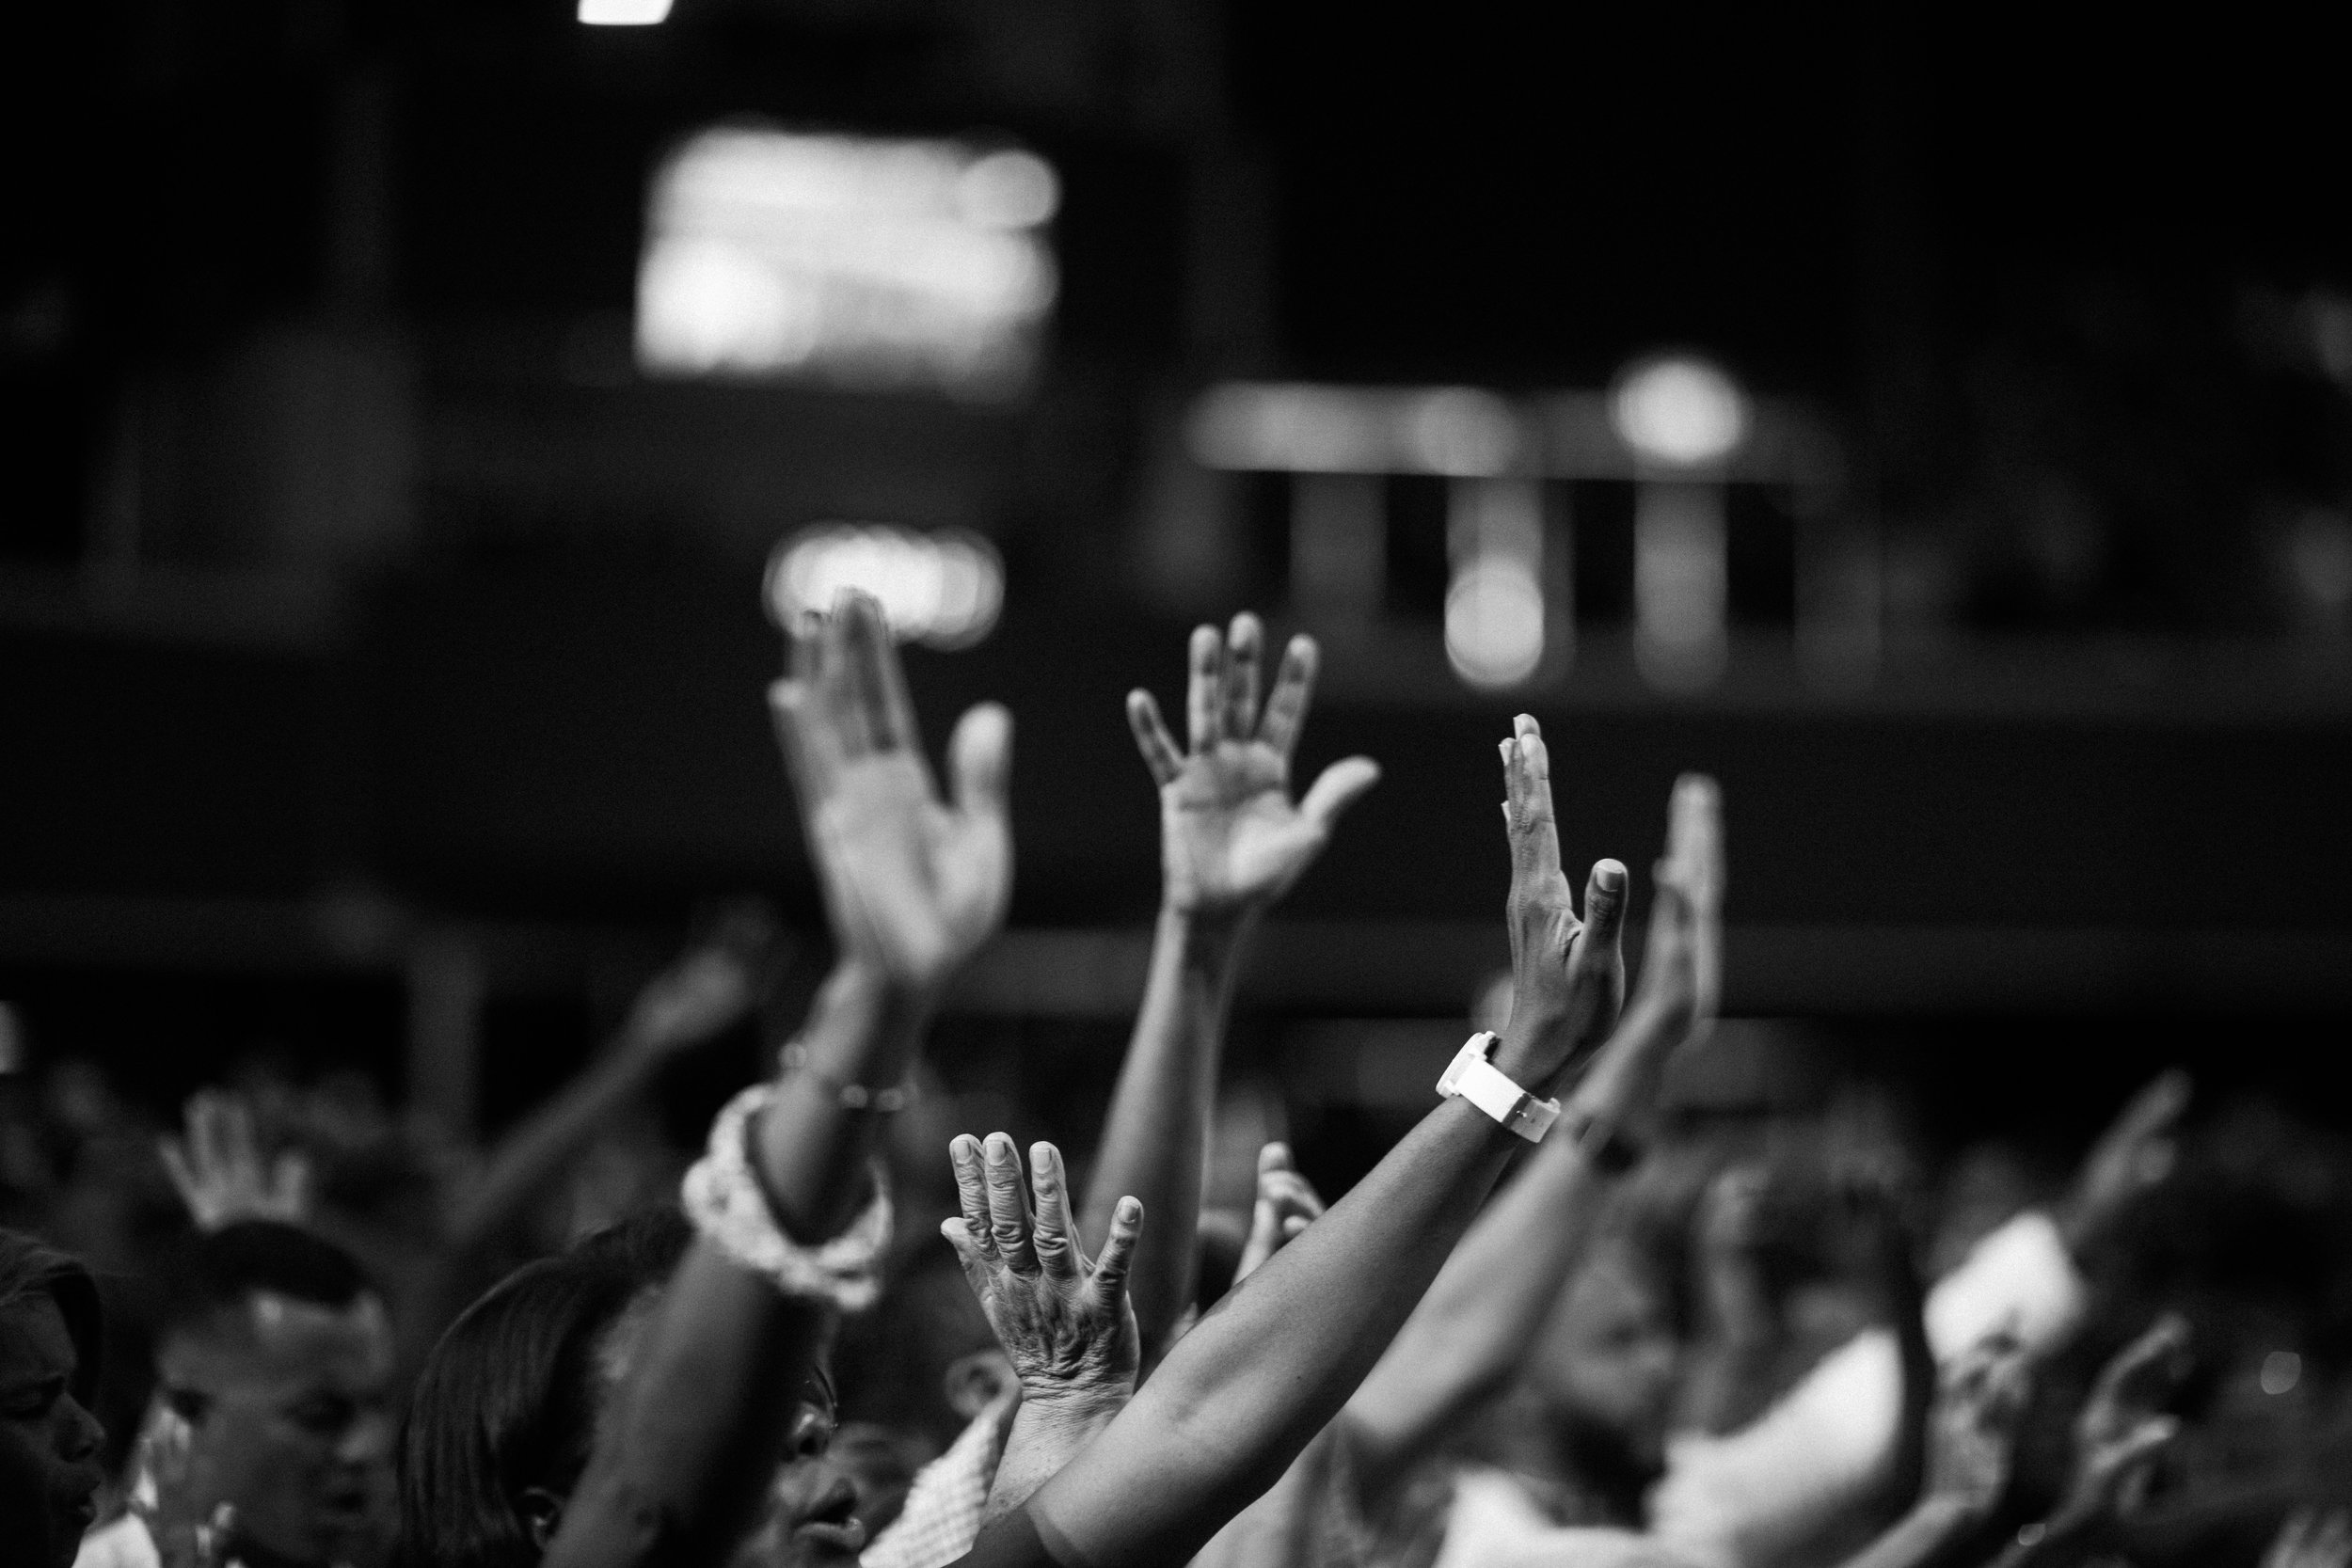 audience-black-and-white-blur-2014775.jpg